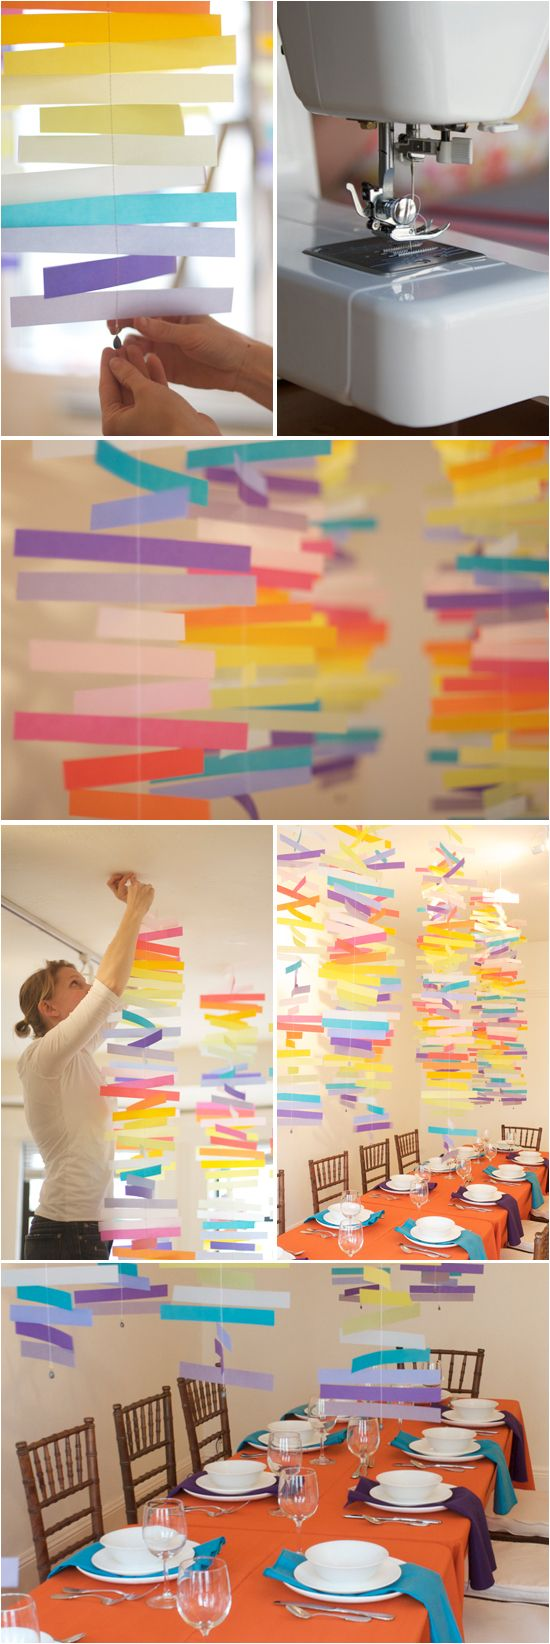 DIY: Modern Colorful Mobiles - Project Wedding